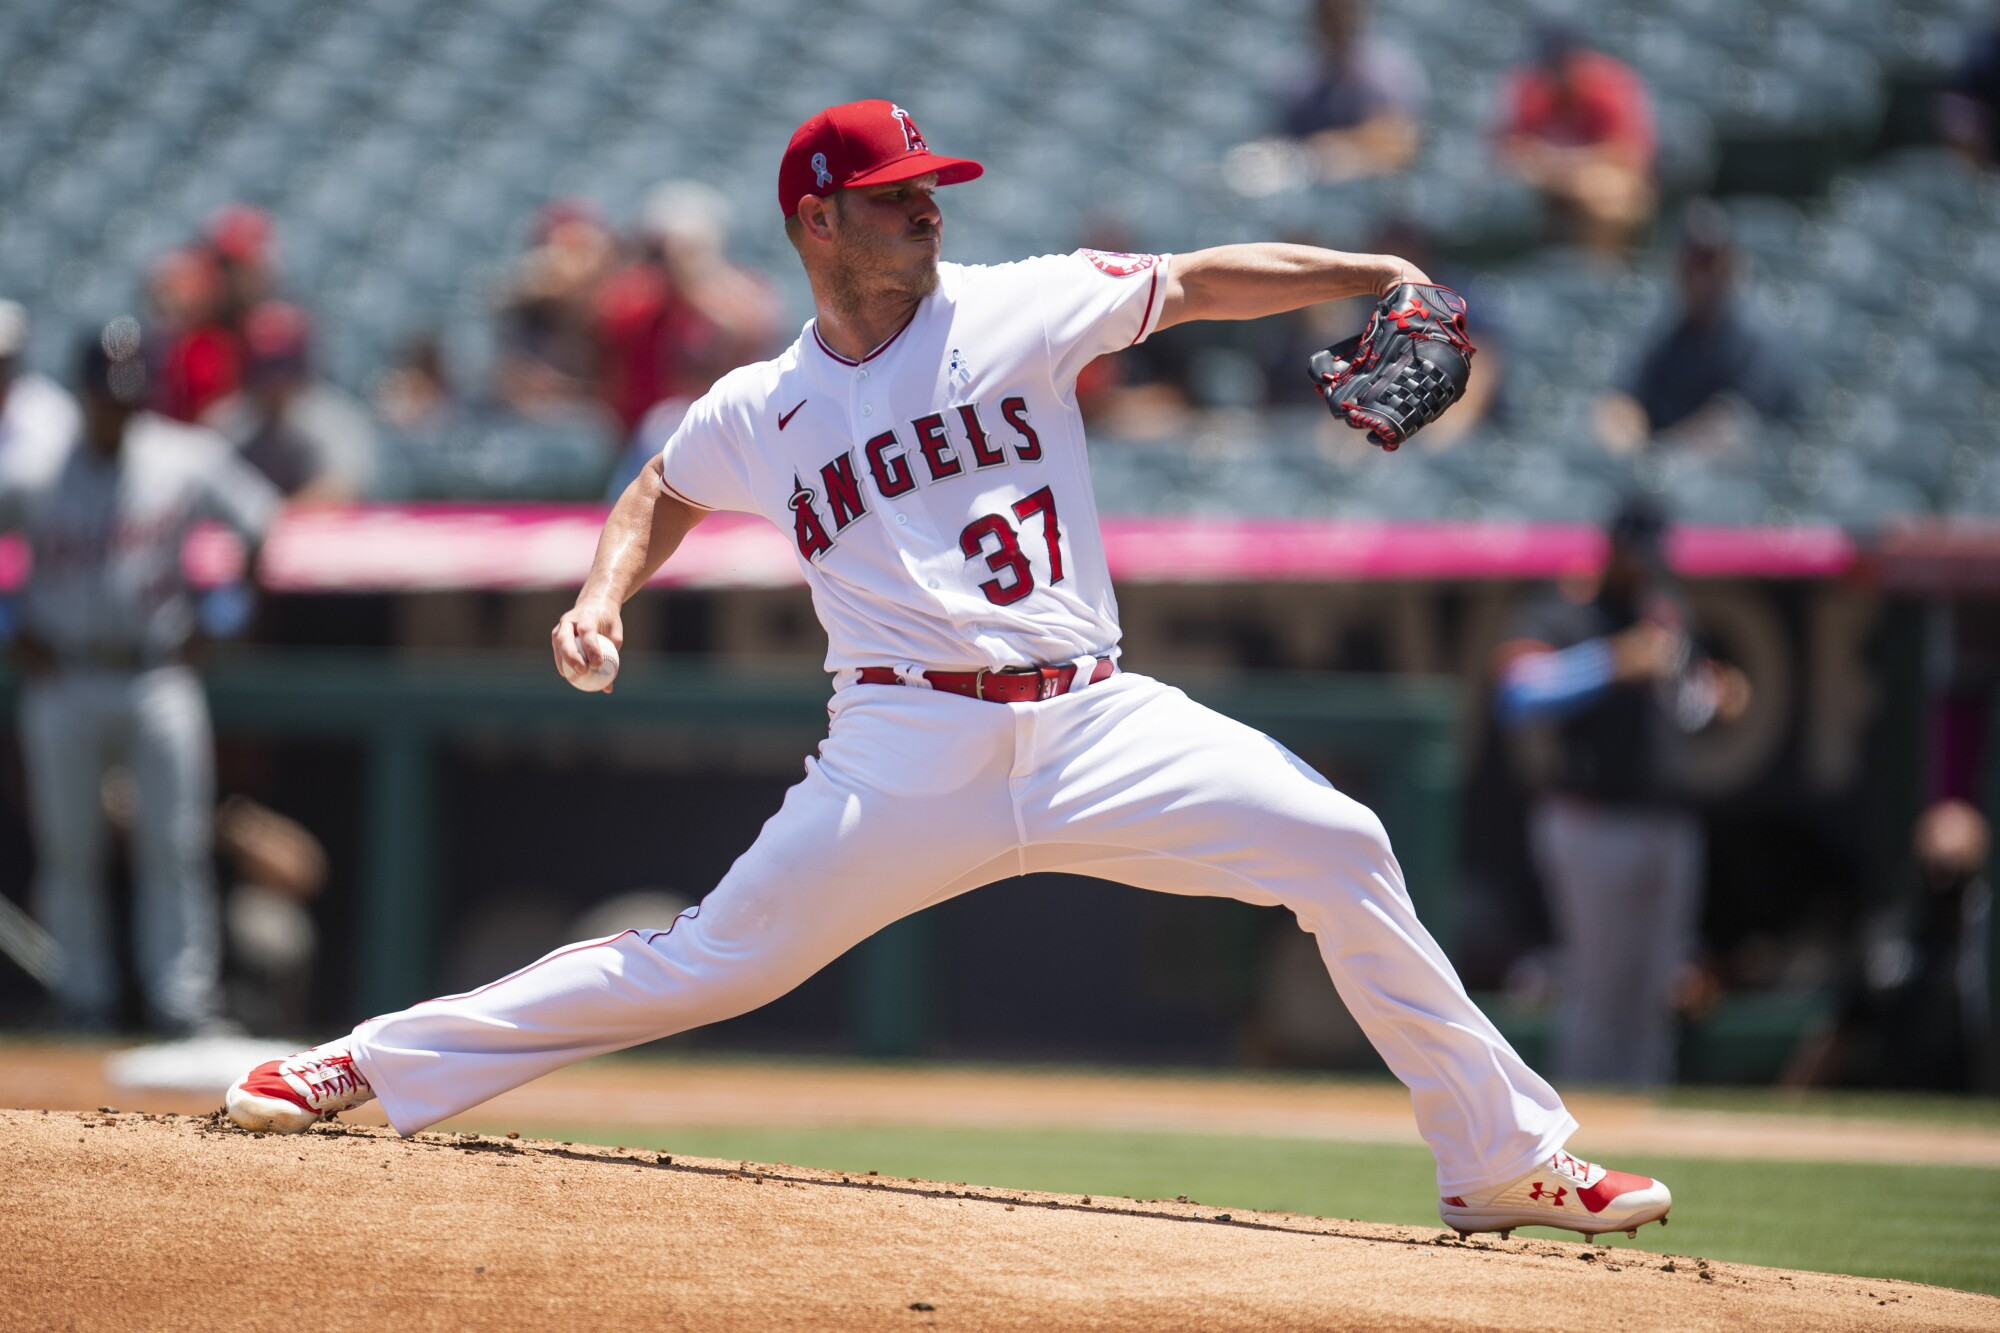 Angels starting pitcher Dylan Bundy delivers during the first inning against the Detroit Tigers on Sunday.